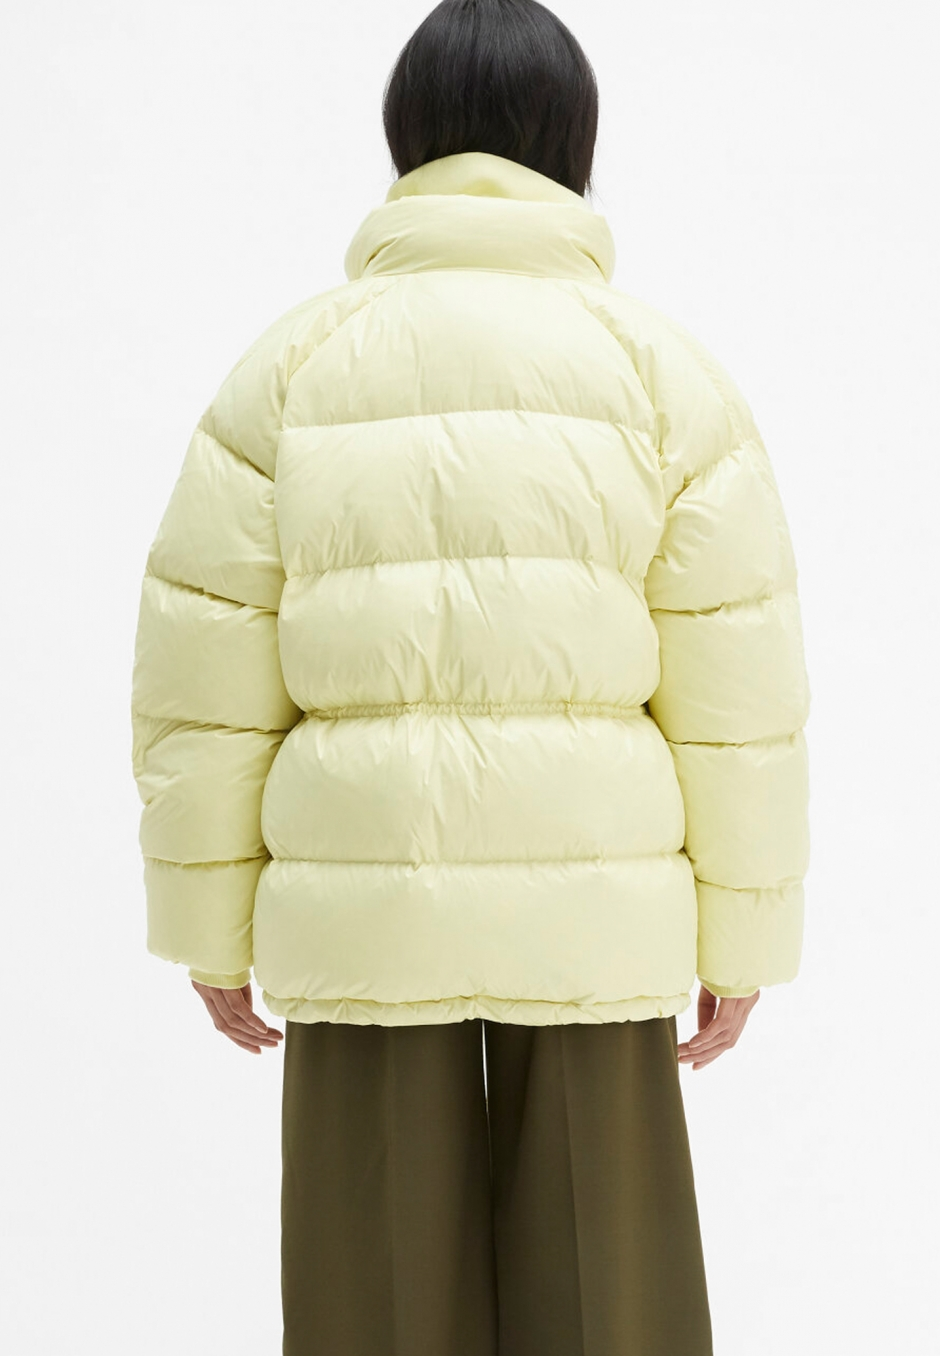 Rodebjer Maurice Jacket